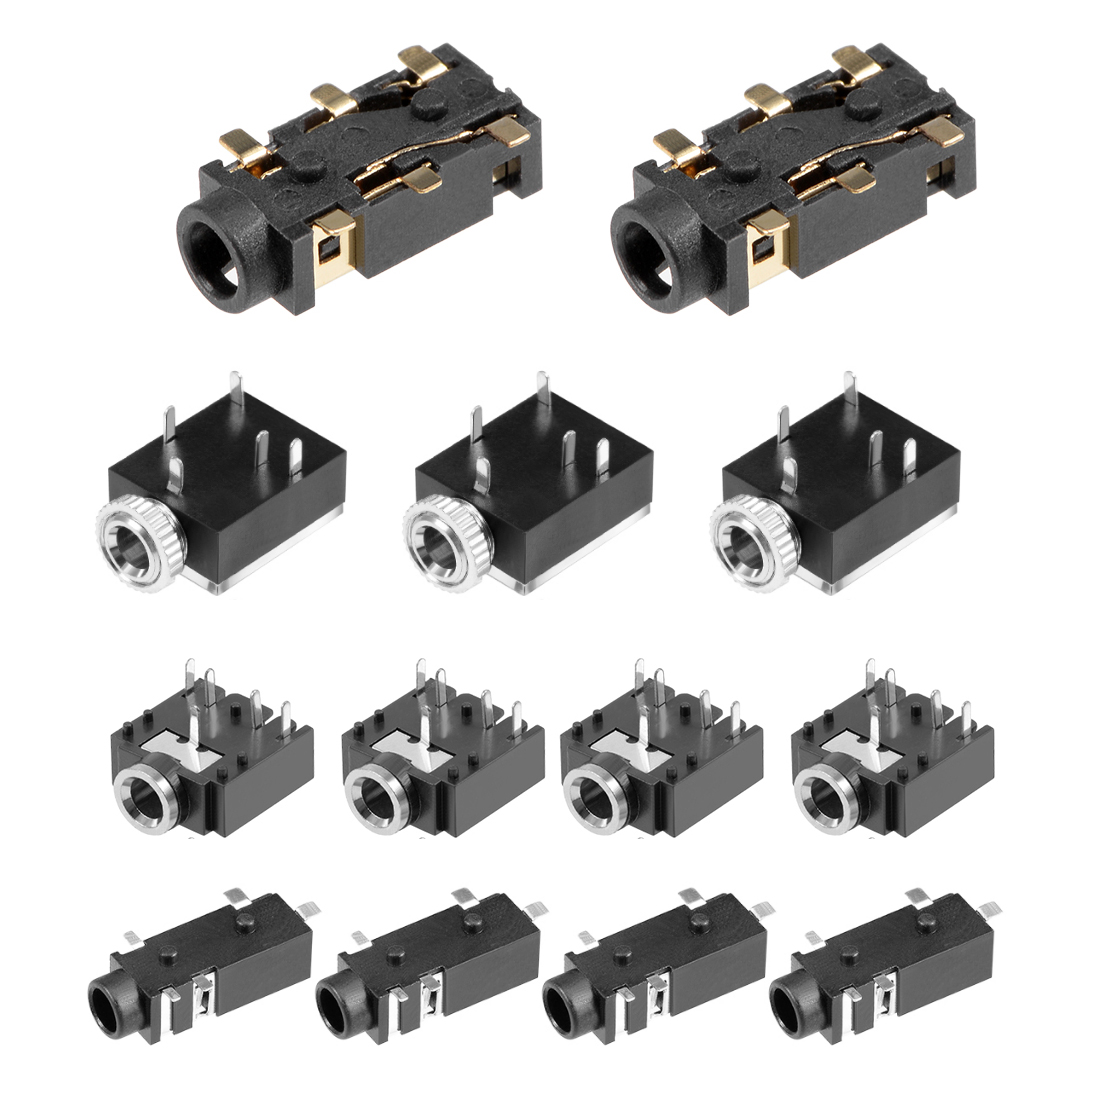 uxcell 4/10/20/50/100Pcs Socket Headphone Stereo <font><b>Jack</b></font> PCB Mount 2.<font><b>5</b></font>/<font><b>3</b></font>.5mm <font><b>3</b></font>/4/<font><b>5</b></font>/6 Pin Audio Video Connector Black image